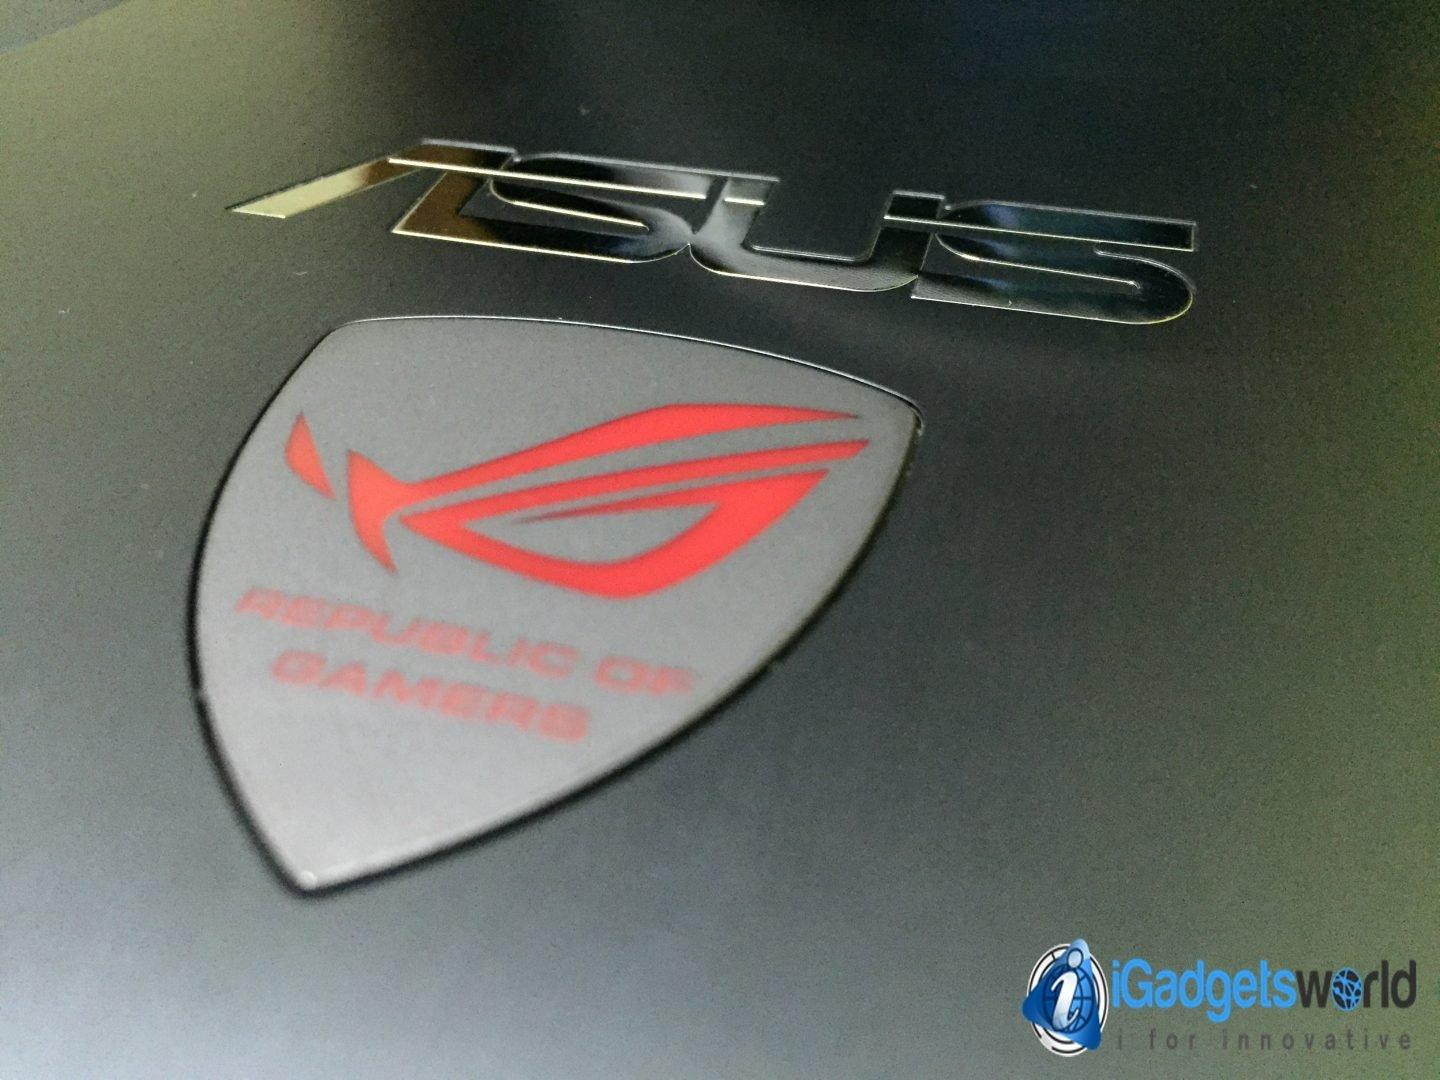 Asus ROG G751J Review: A Slightly Overpriced Ultra High-End Gaming Laptop - 8